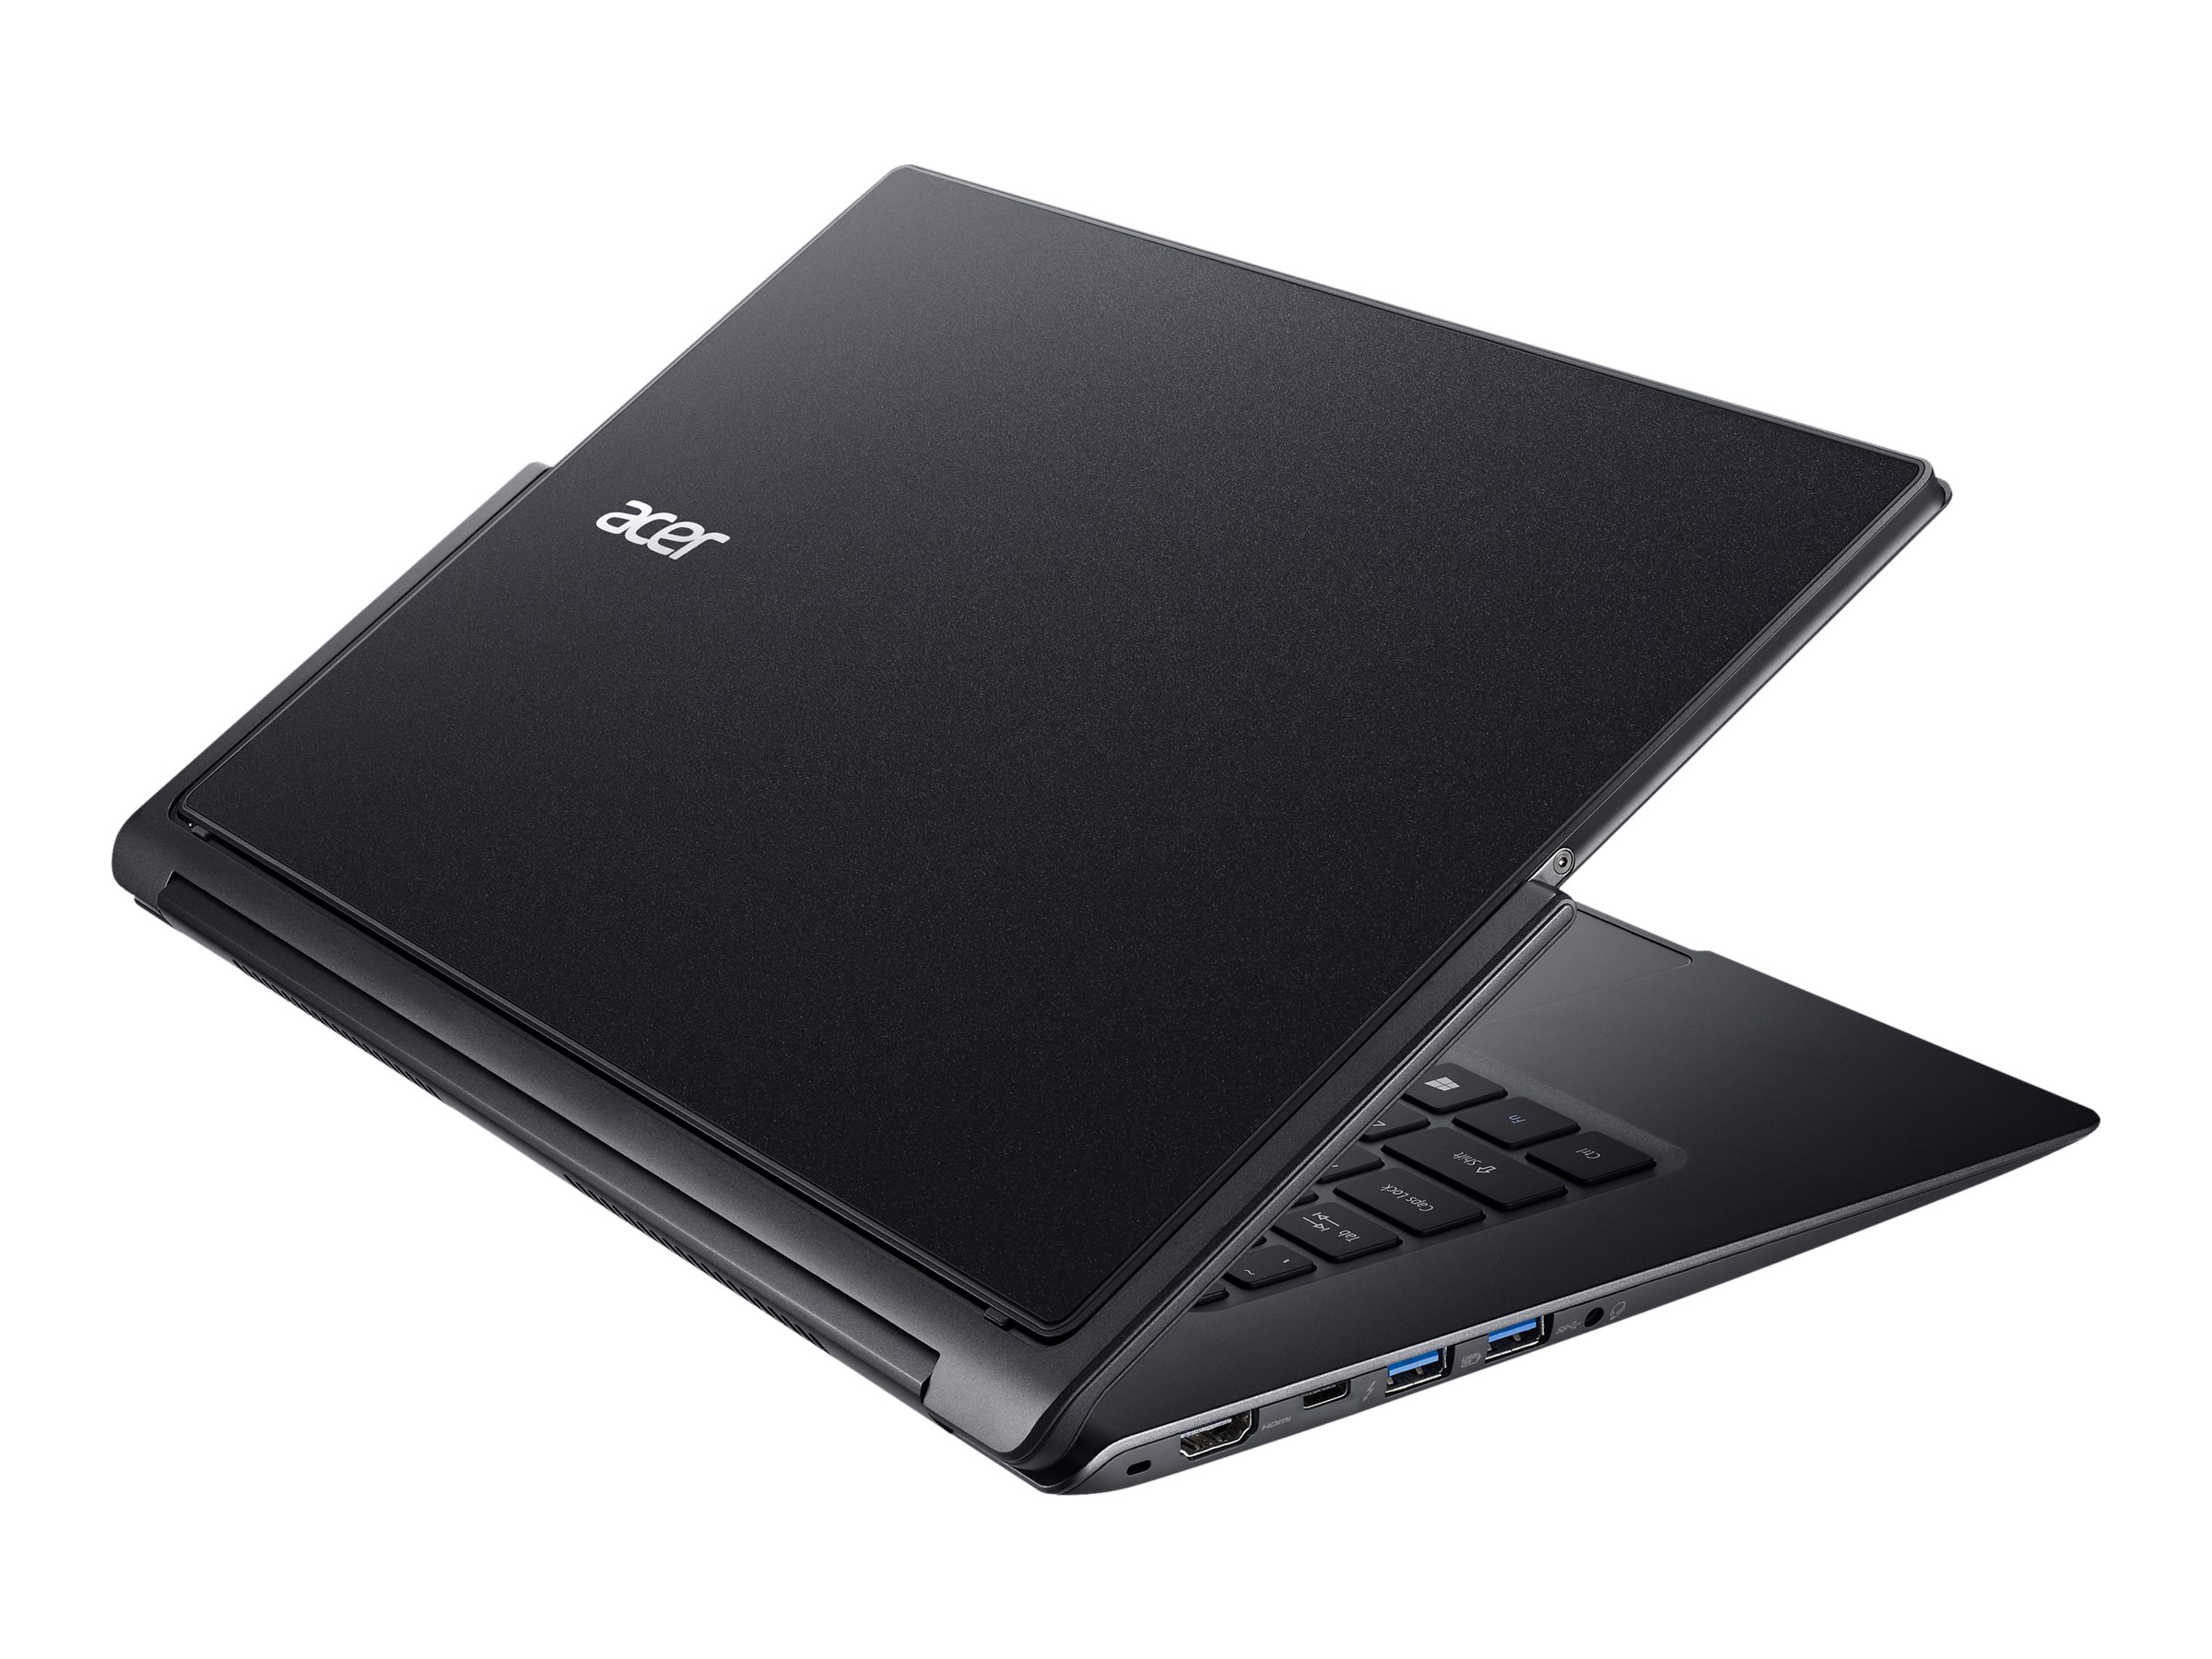 Acer Aspire R7-372T-50PJ Core i5-6200U 2.3GHz 8GB 2x128GB SSD ac GNIC BT WC 4C 13.3 HD MT W10H64, NX.G8TAA.002, 31768741, Notebooks - Convertible